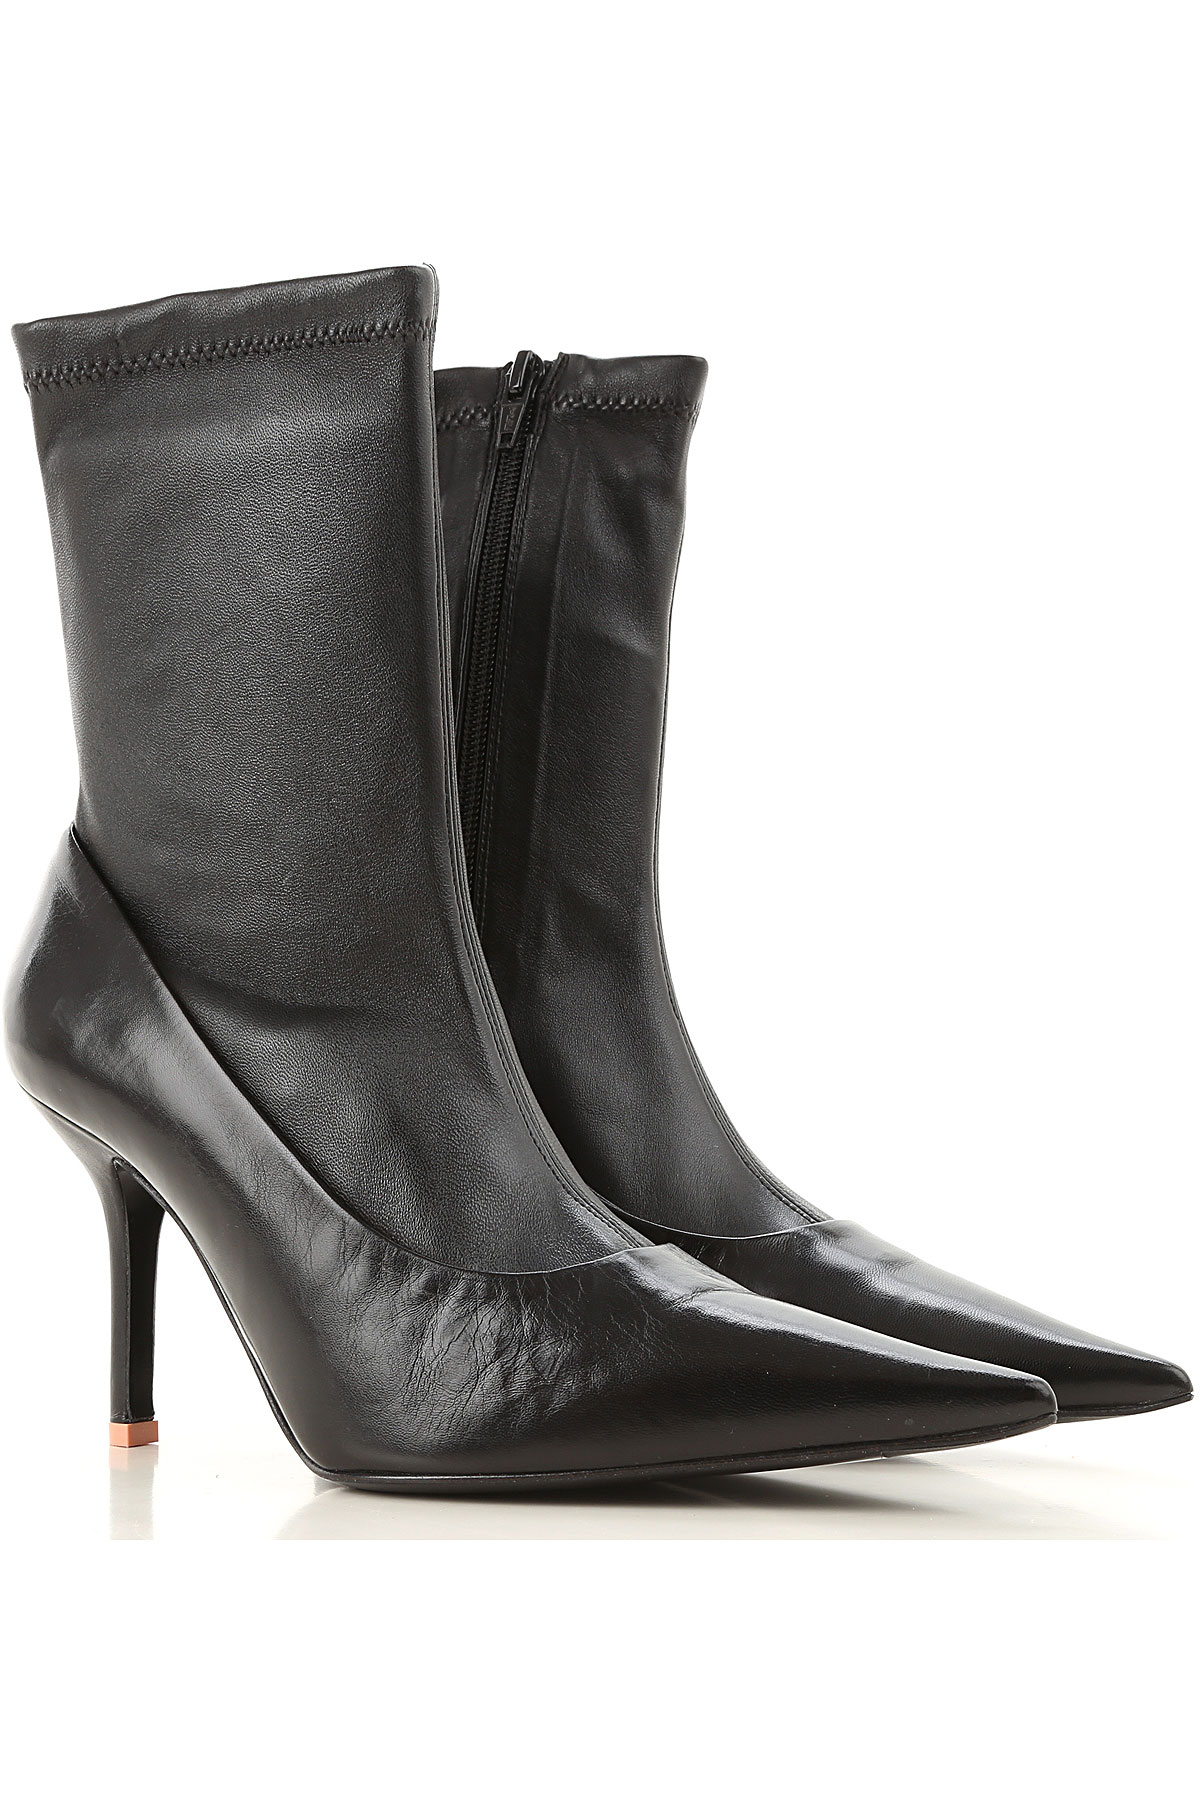 Acne Studios Boots moterims, Booties  in Outlet, juodi, oda, 2019, 37 39